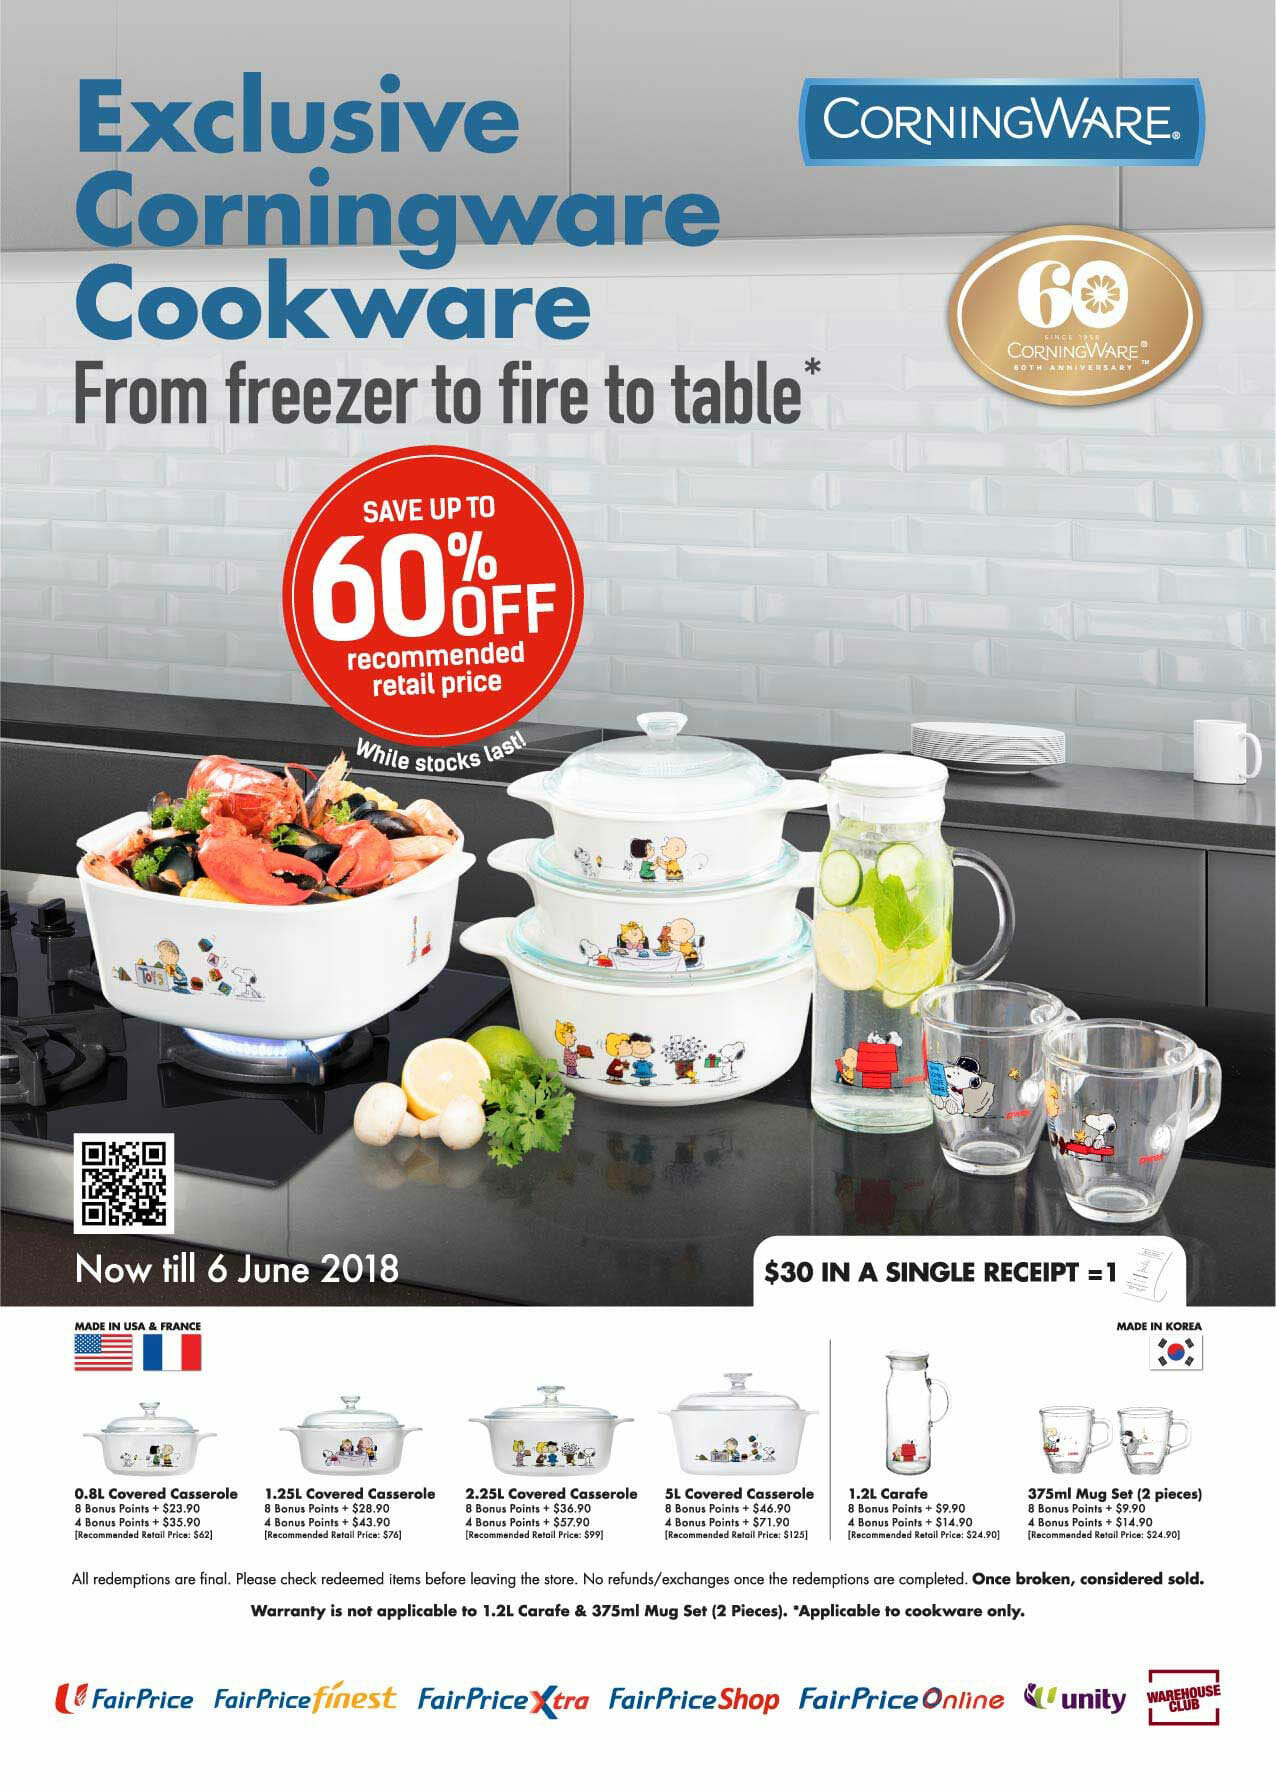 This PES originally came with your choice of a Black Trefoil or Cornflower PB skillet with a flatter bottom than the standard Corning Ware (Similar to the solid white cookware that was available with the